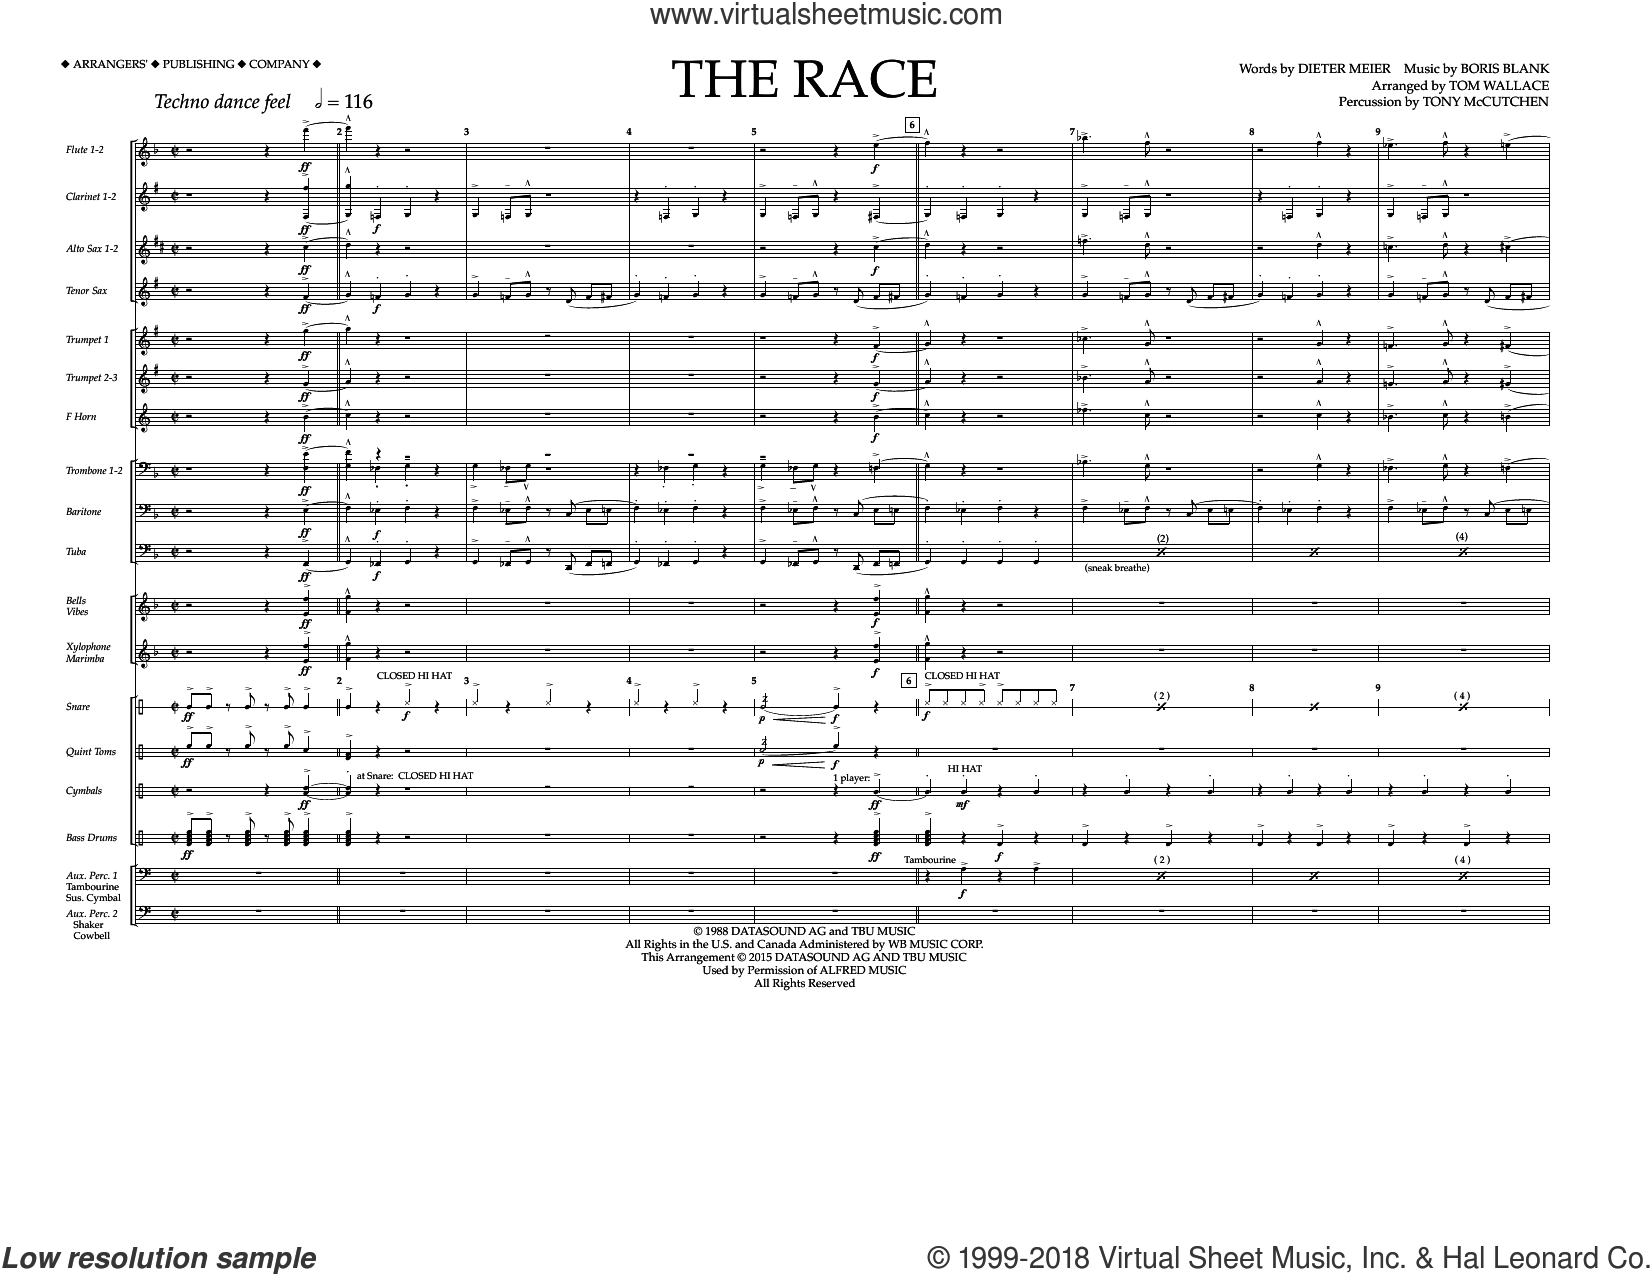 The Race (COMPLETE) sheet music for marching band by Tom Wallace, Boris Blank, Dieter Meier and Tony McCutchen, intermediate skill level